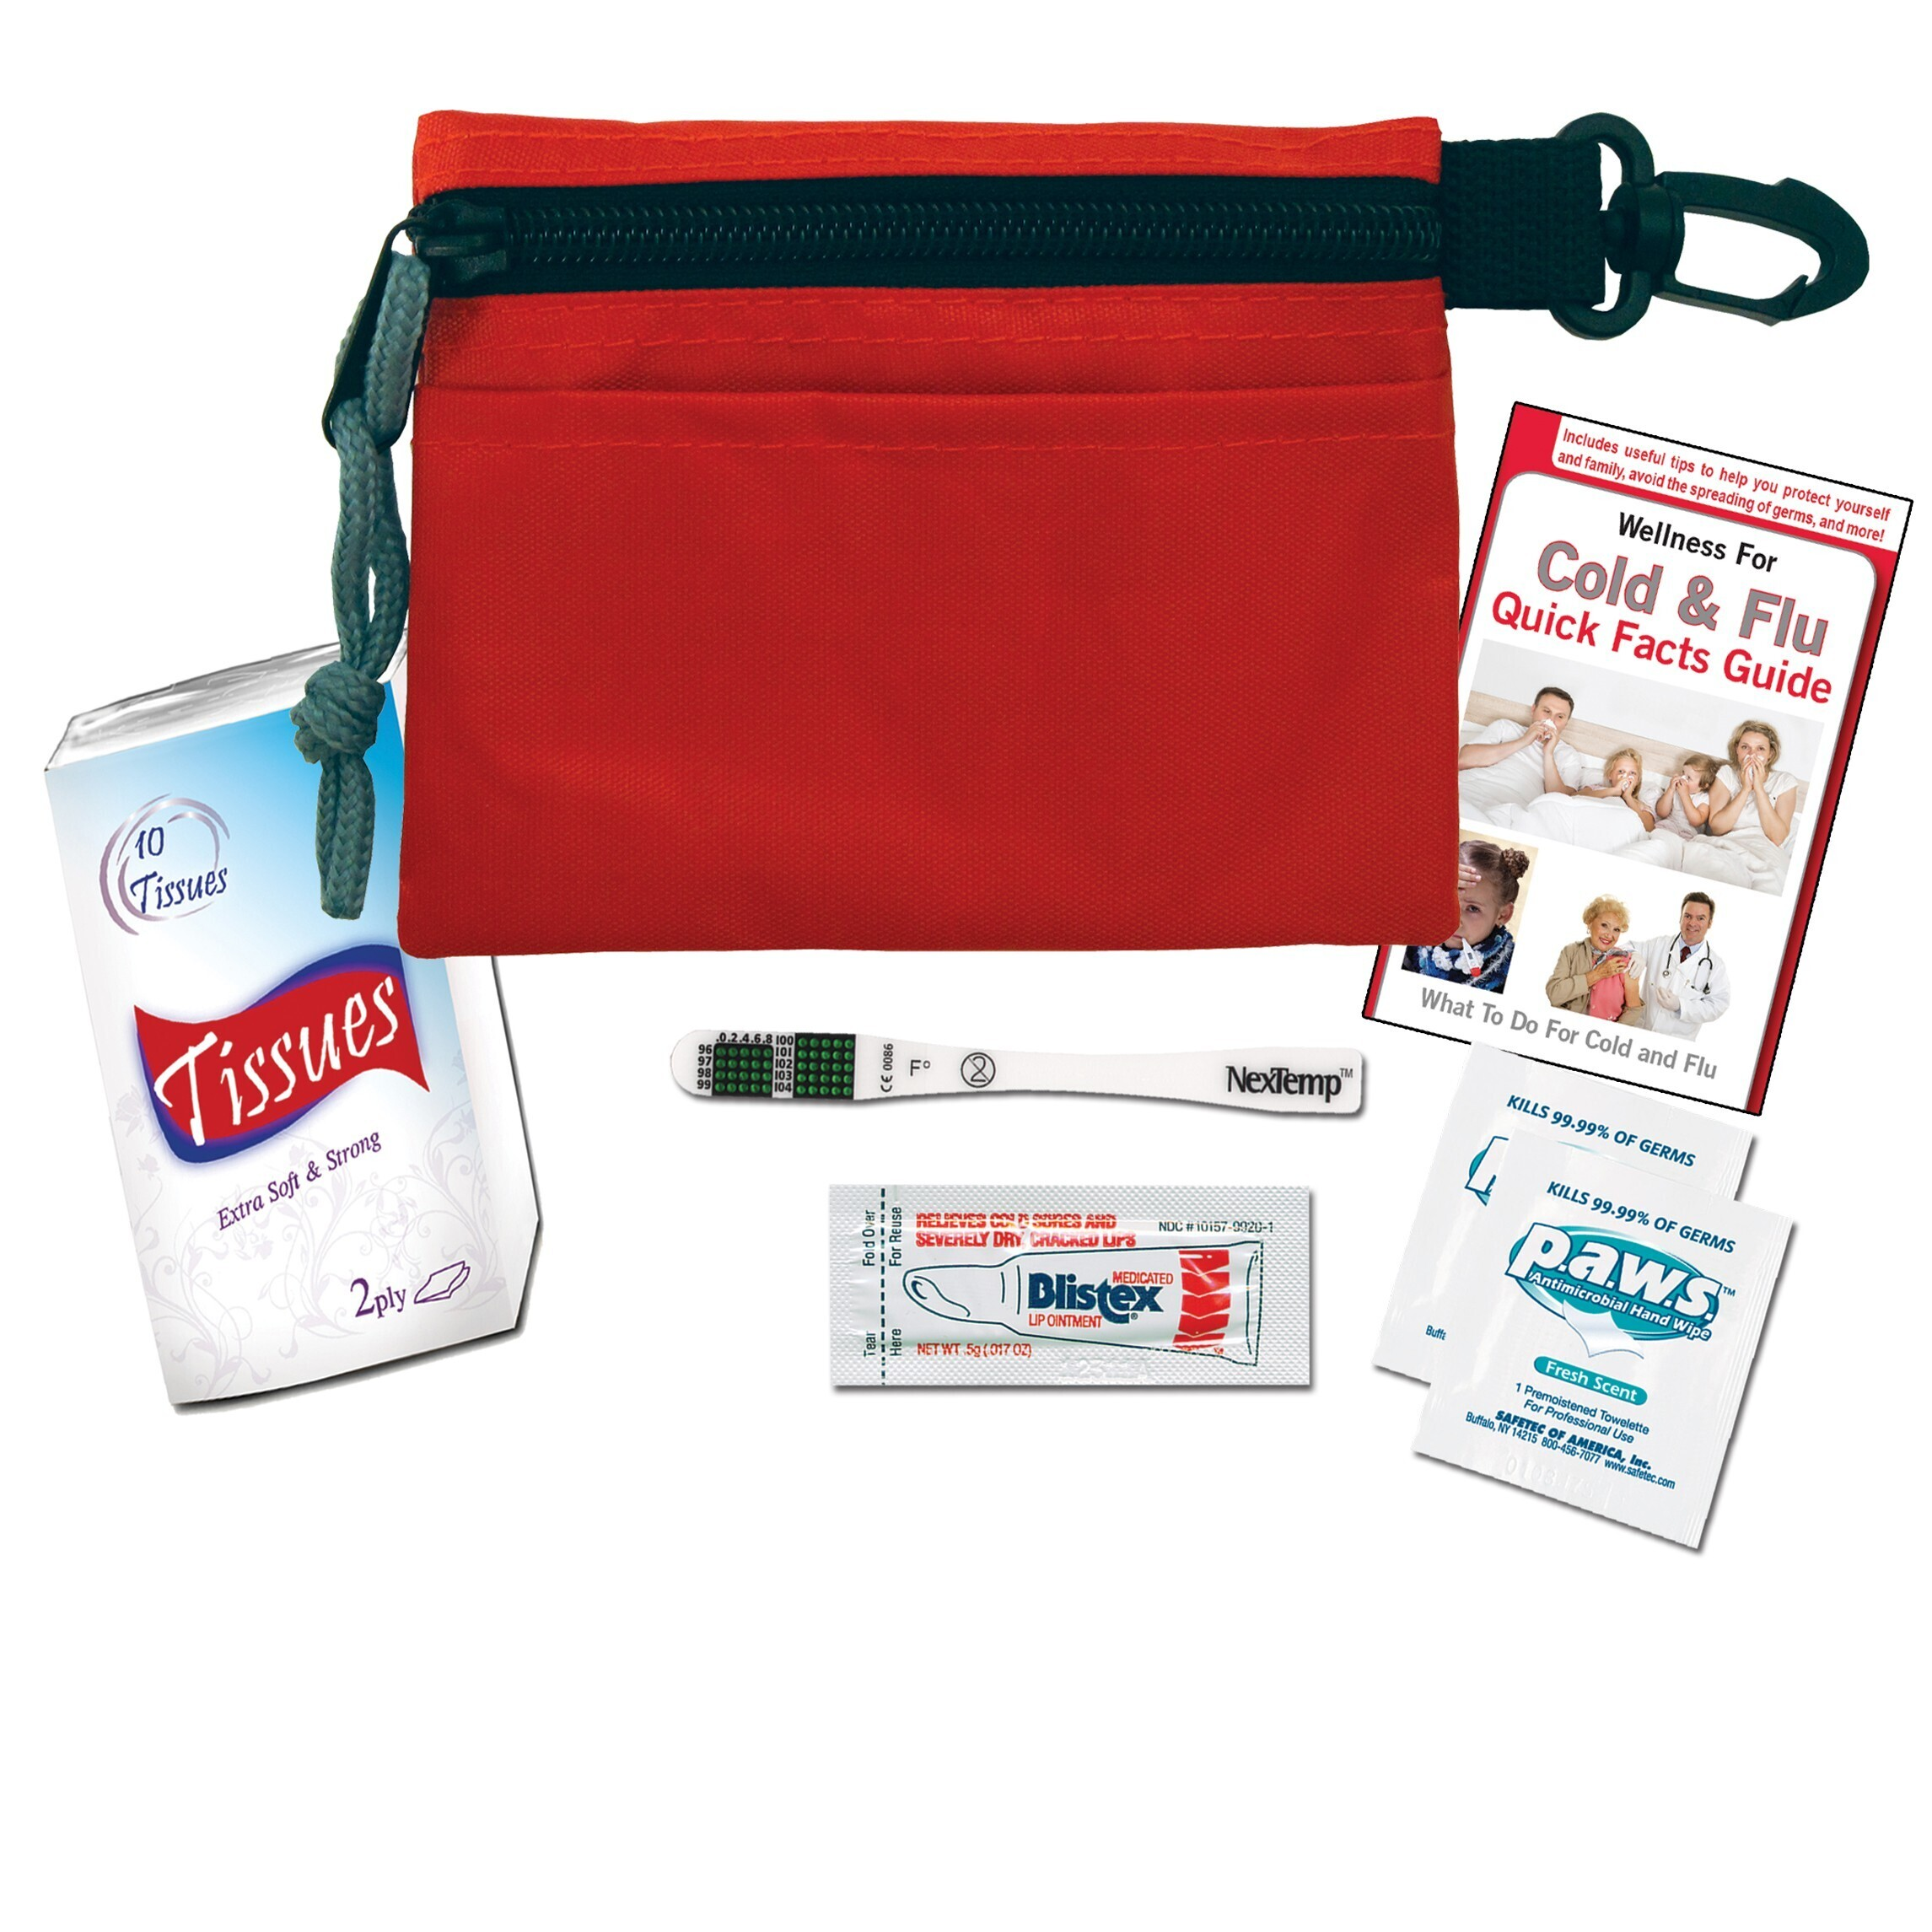 Compact Cold & Flu First Aid Kit